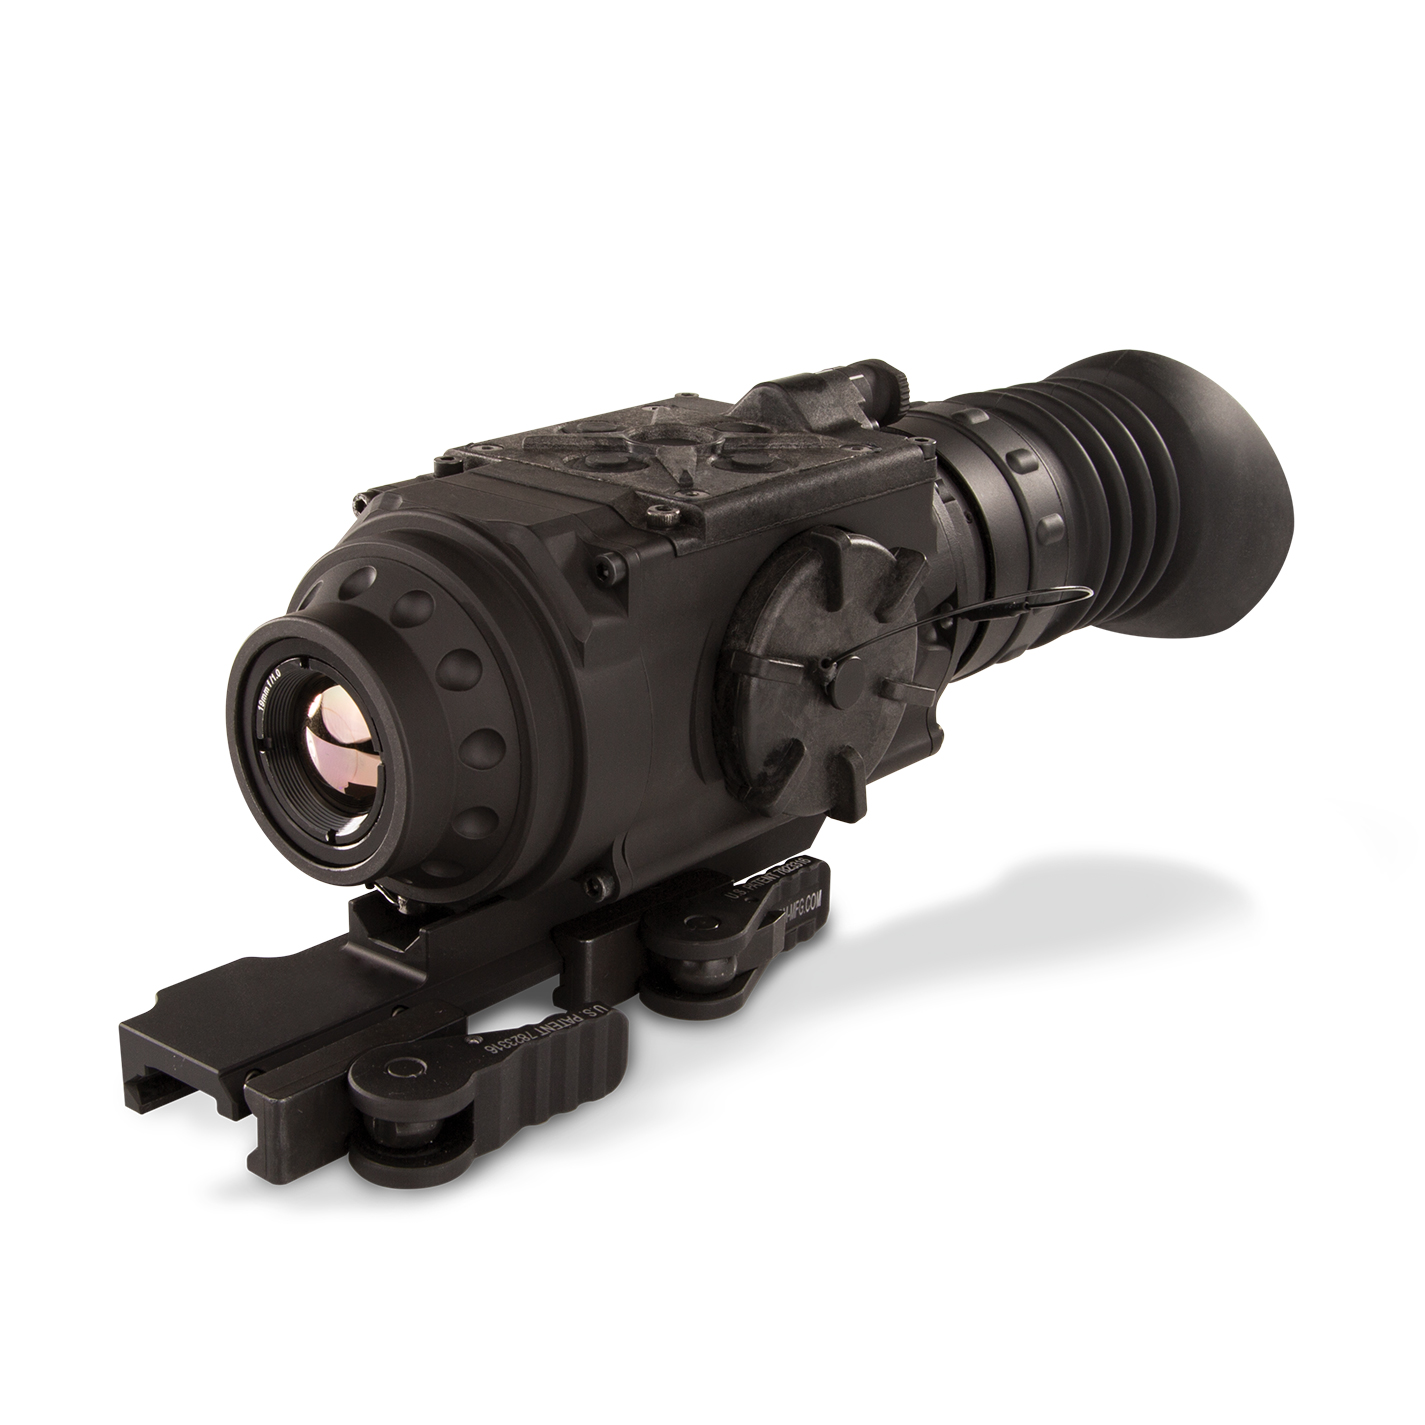 FLIR ThermoSight Pro Series Thermal Weapon Sight